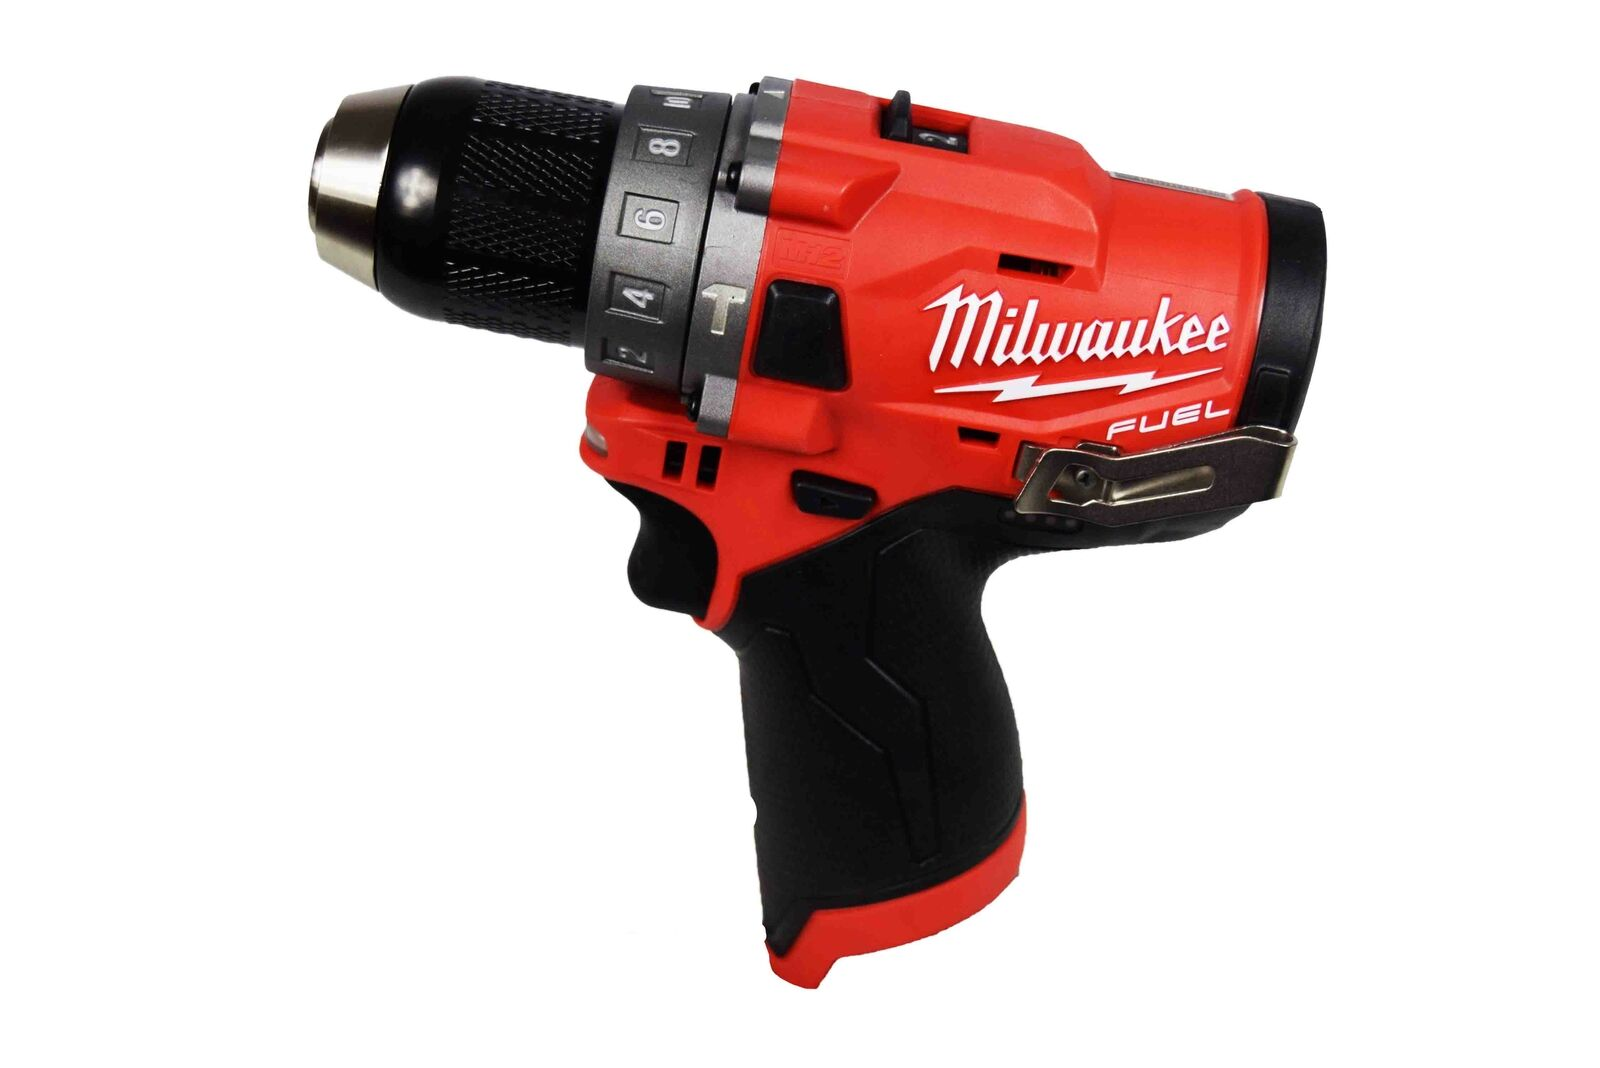 2504-20 davidstoolsandmore Milwaukee 2504-20 M12 Fuel 12-volt Brushless 1/2 In. Hammer Drill (tool-only)